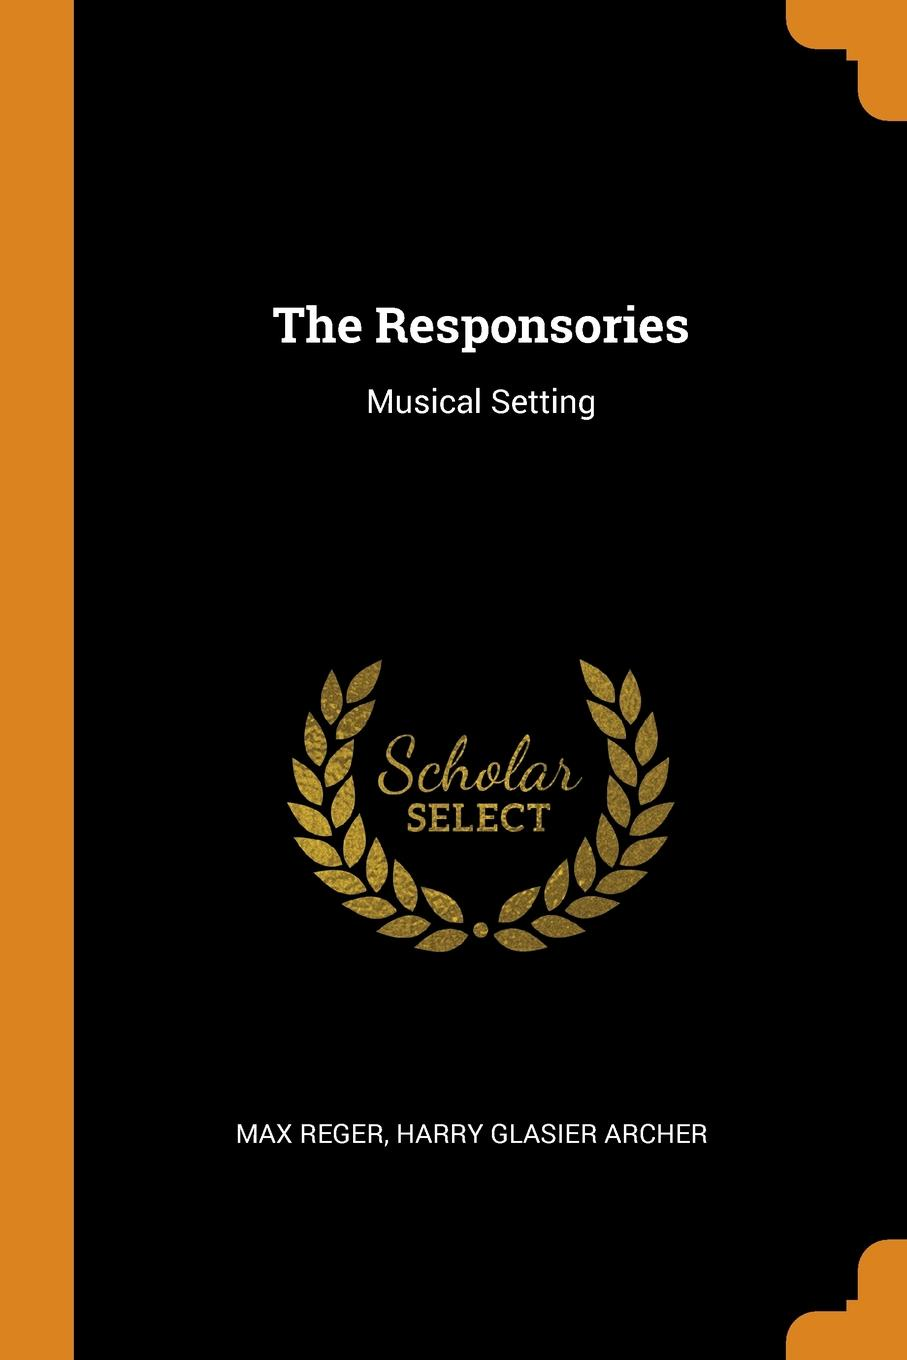 Max Reger, Harry Glasier Archer The Responsories. Musical Setting max reger the responsories musical setting